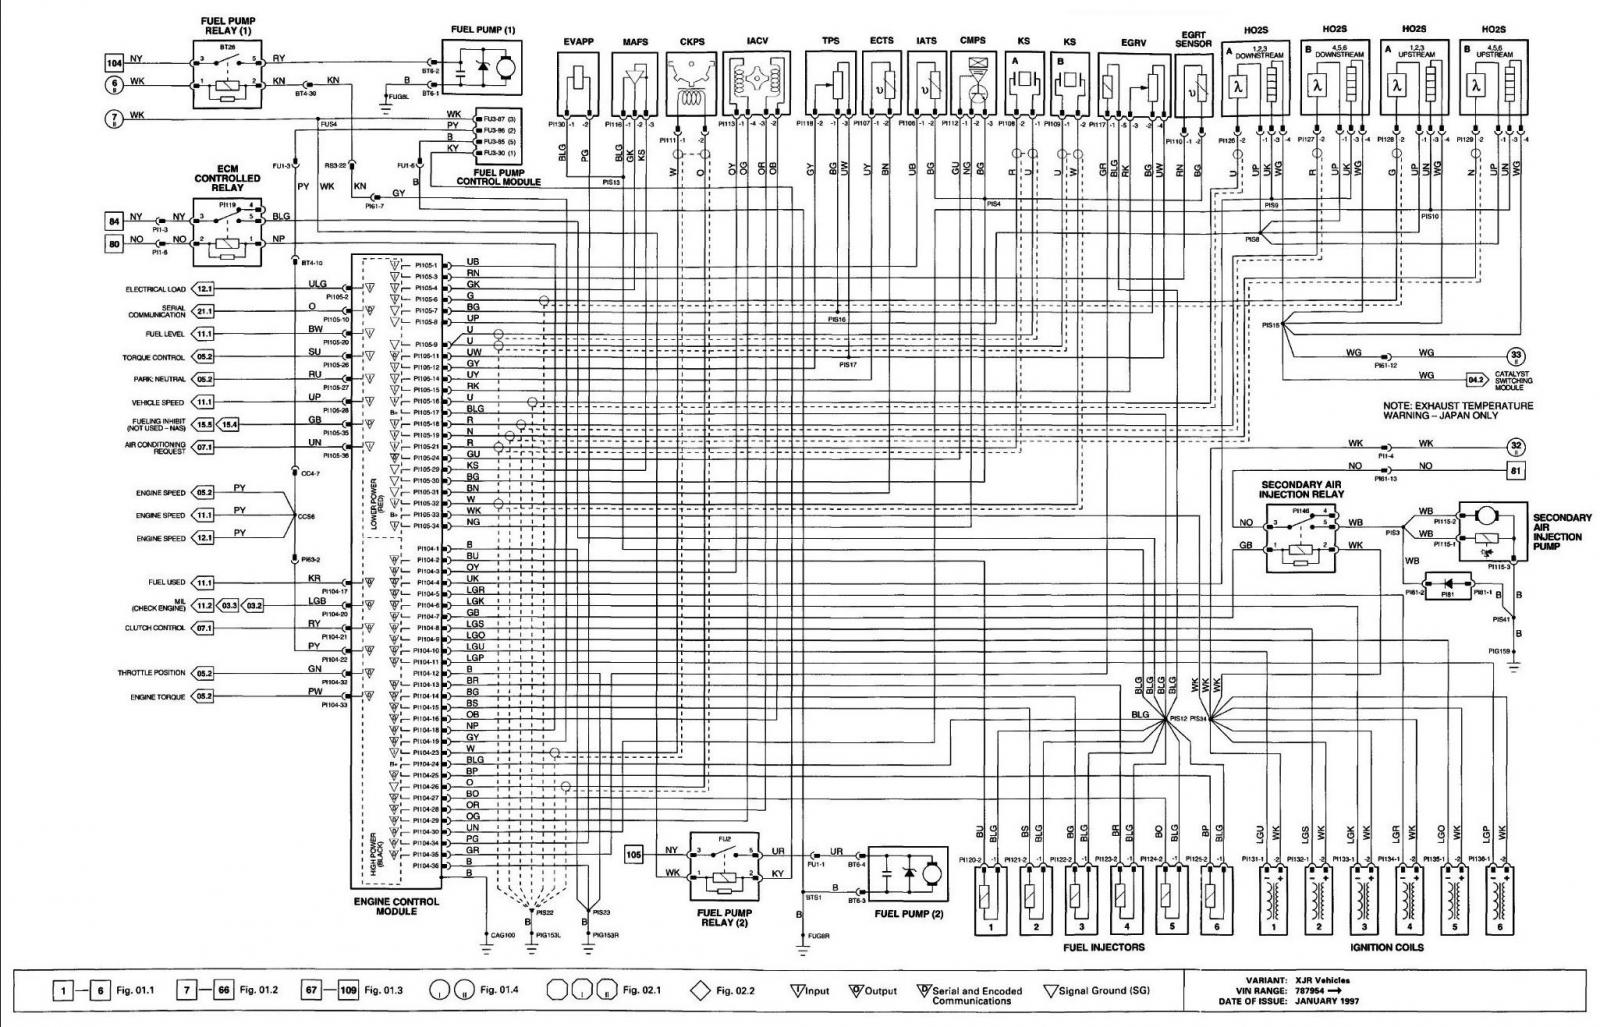 6770_1446_jaguar-wiring-diagram-173648879 Xj X Wiring Diagram on wire trailer, ford alternator, driving light, camper trailer, limit switch, 4 pin relay, dump trailer, basic electrical, simple motorcycle, ignition switch, boat battery, air compressor, fog light, dc motor,